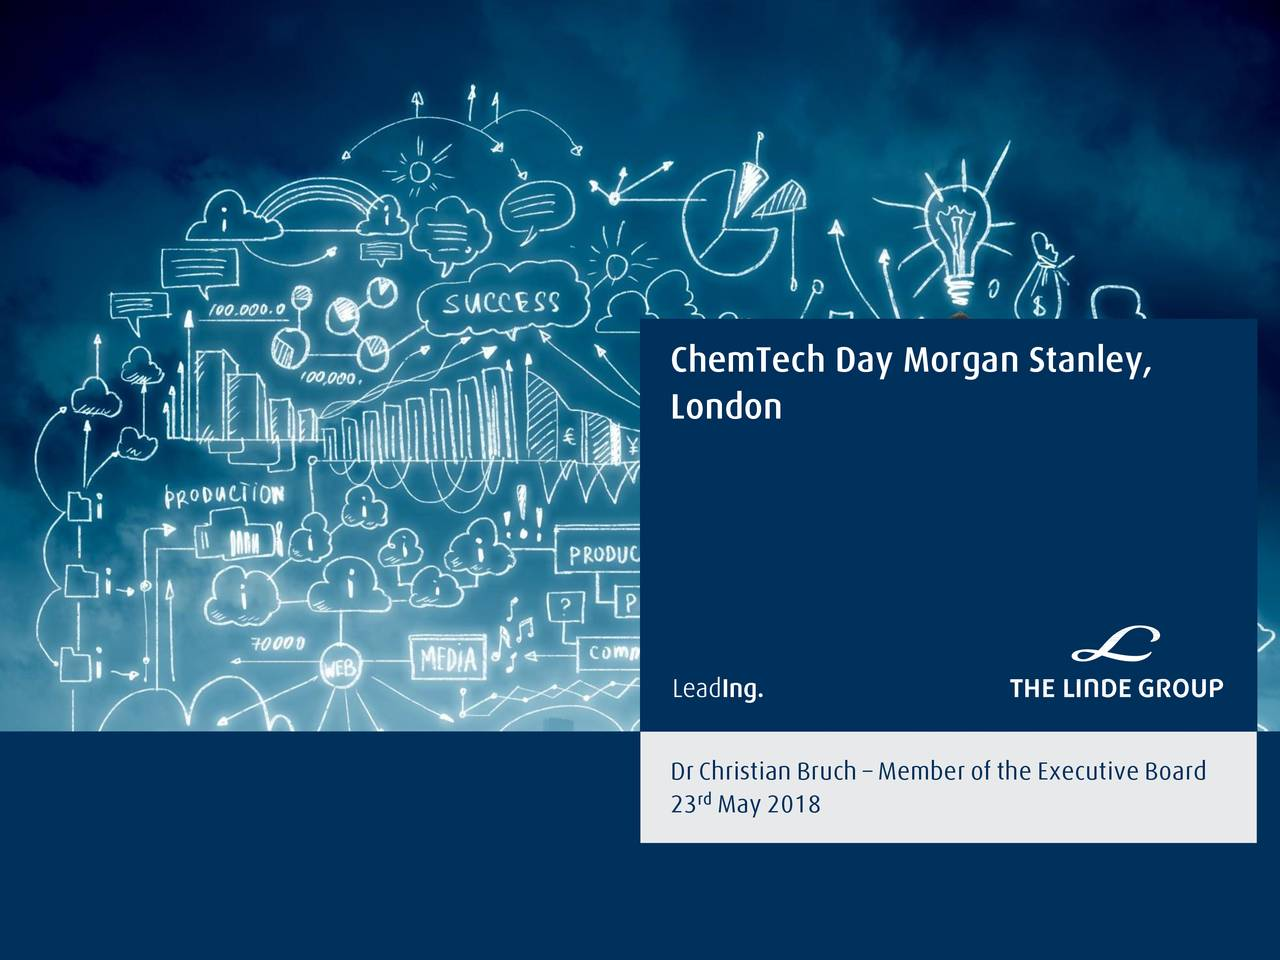 Linde (LNEGY) Presents At Morgan Stanley ChemTech Day - Slideshow